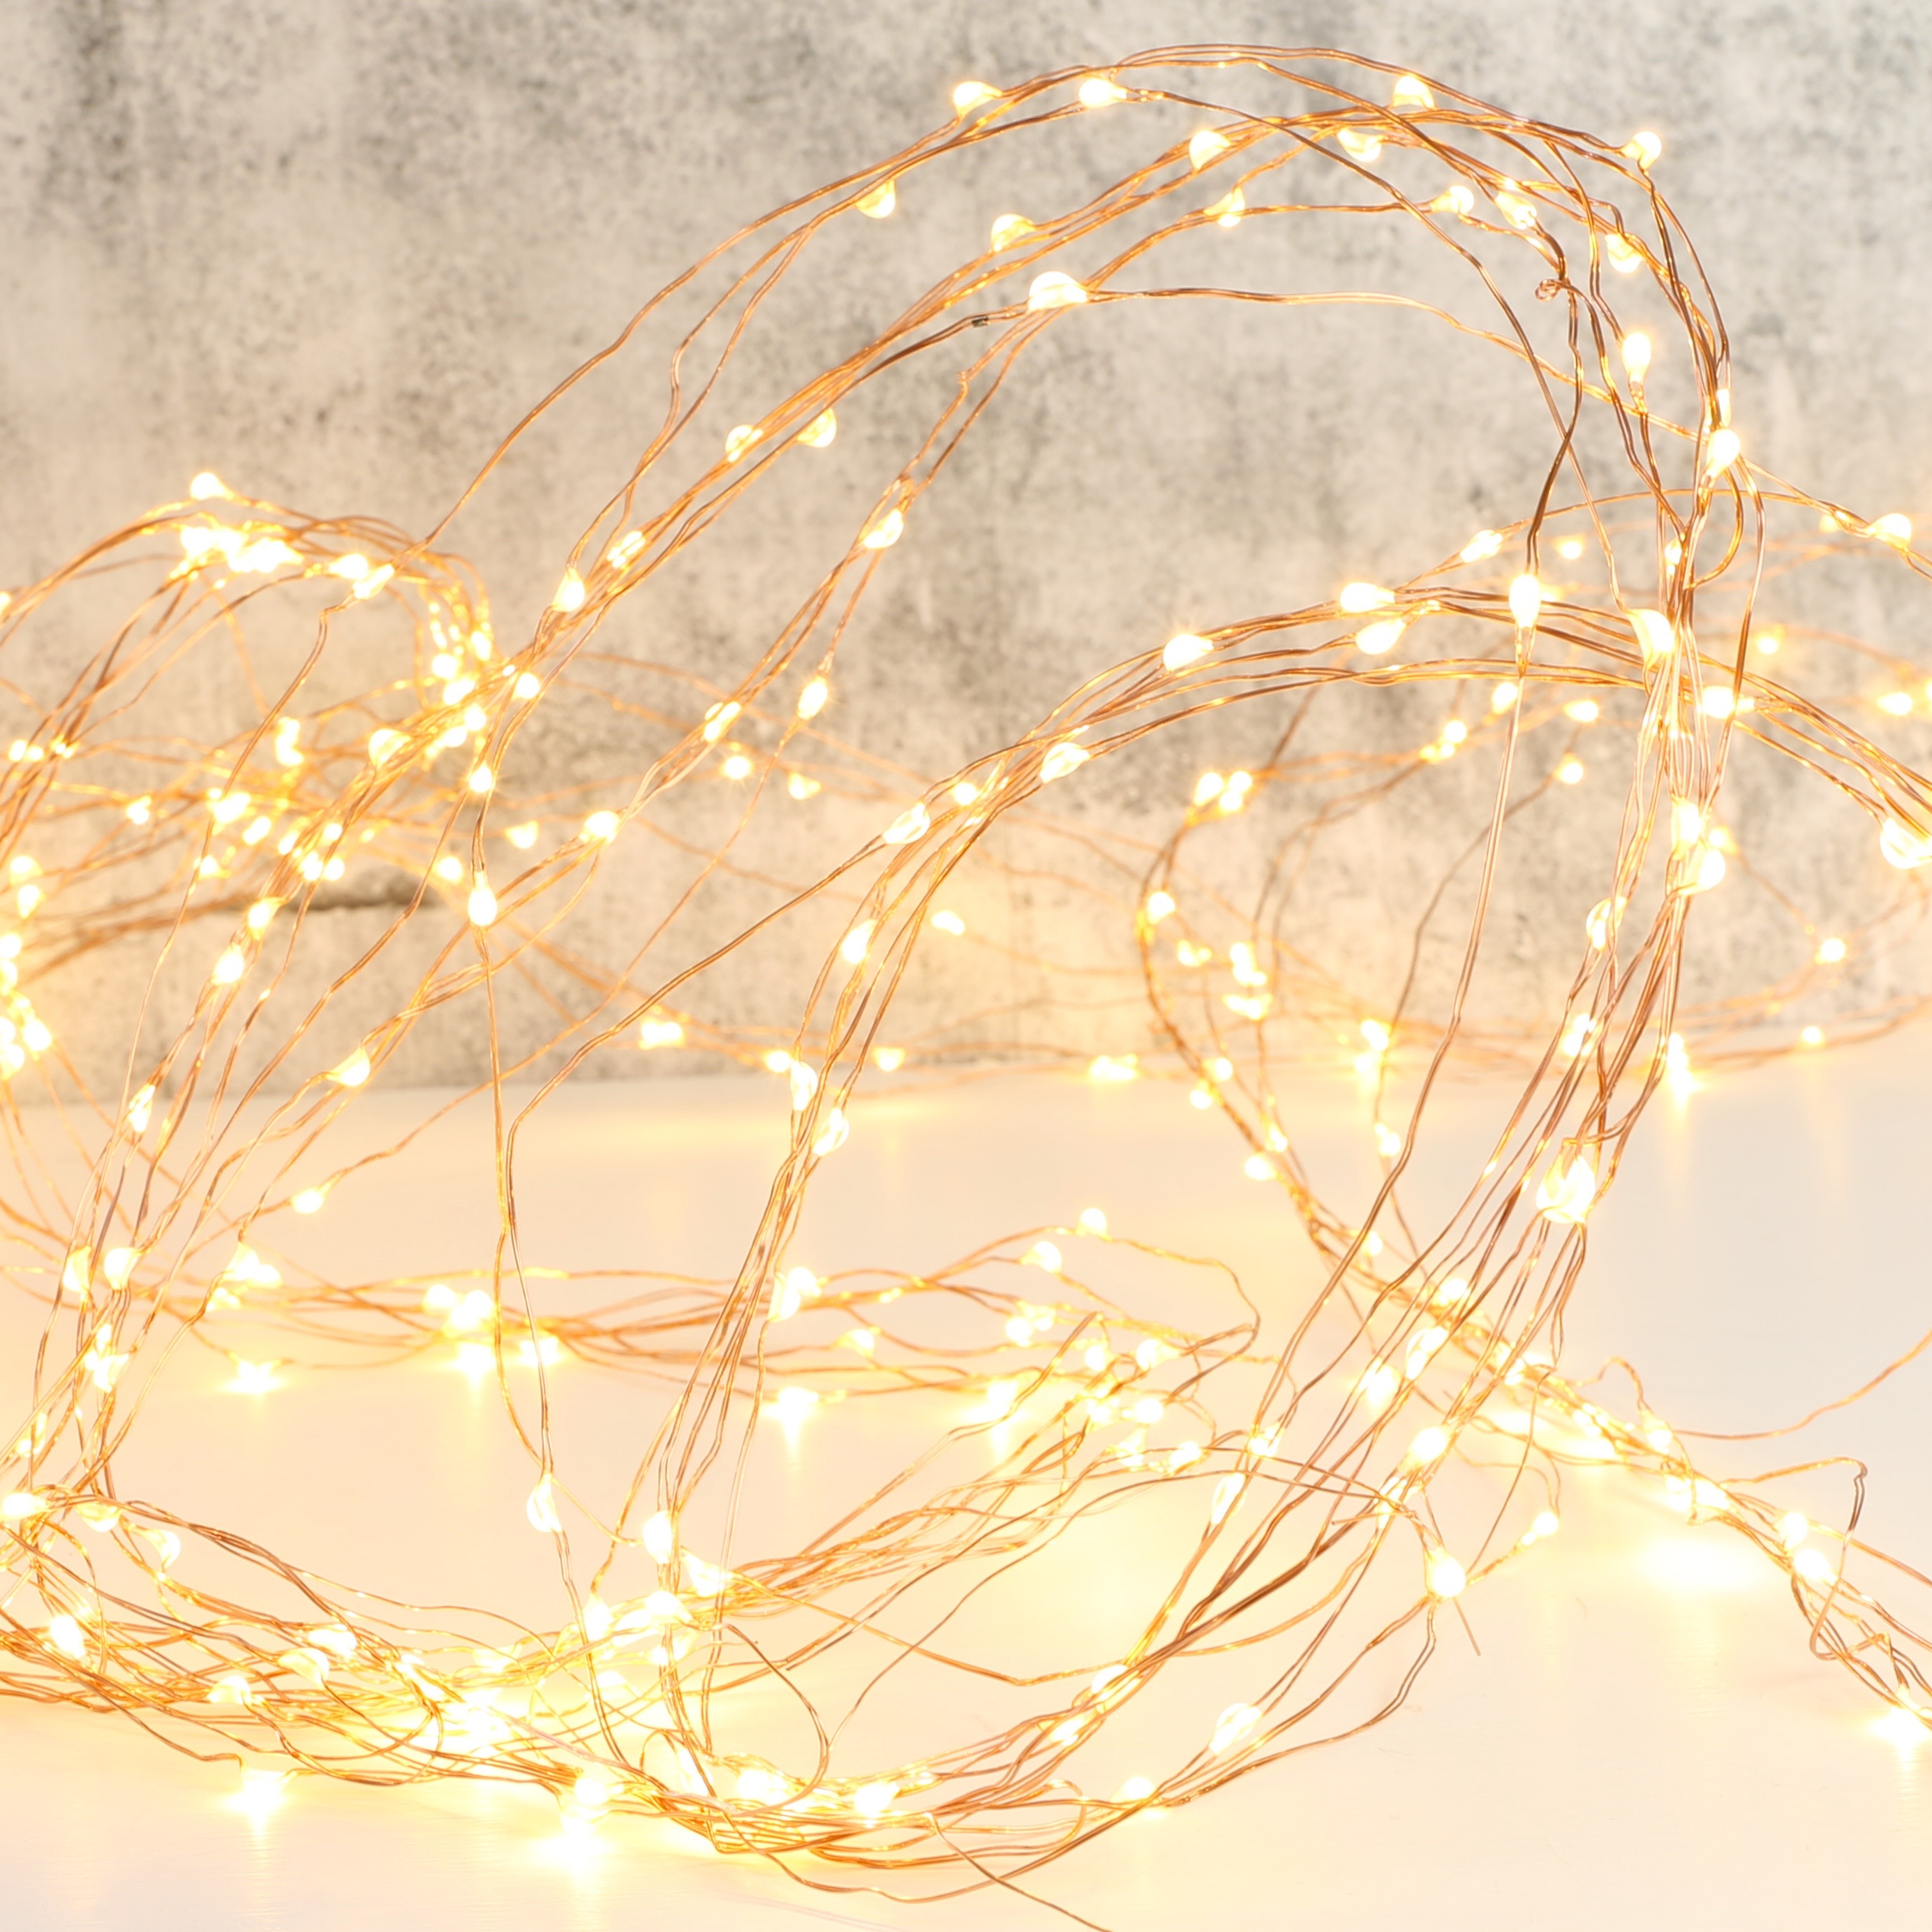 Copper Wire Waterfall String Lights - Lisa Angel – www.lisaangel.co.uk - RRP AU$77.80